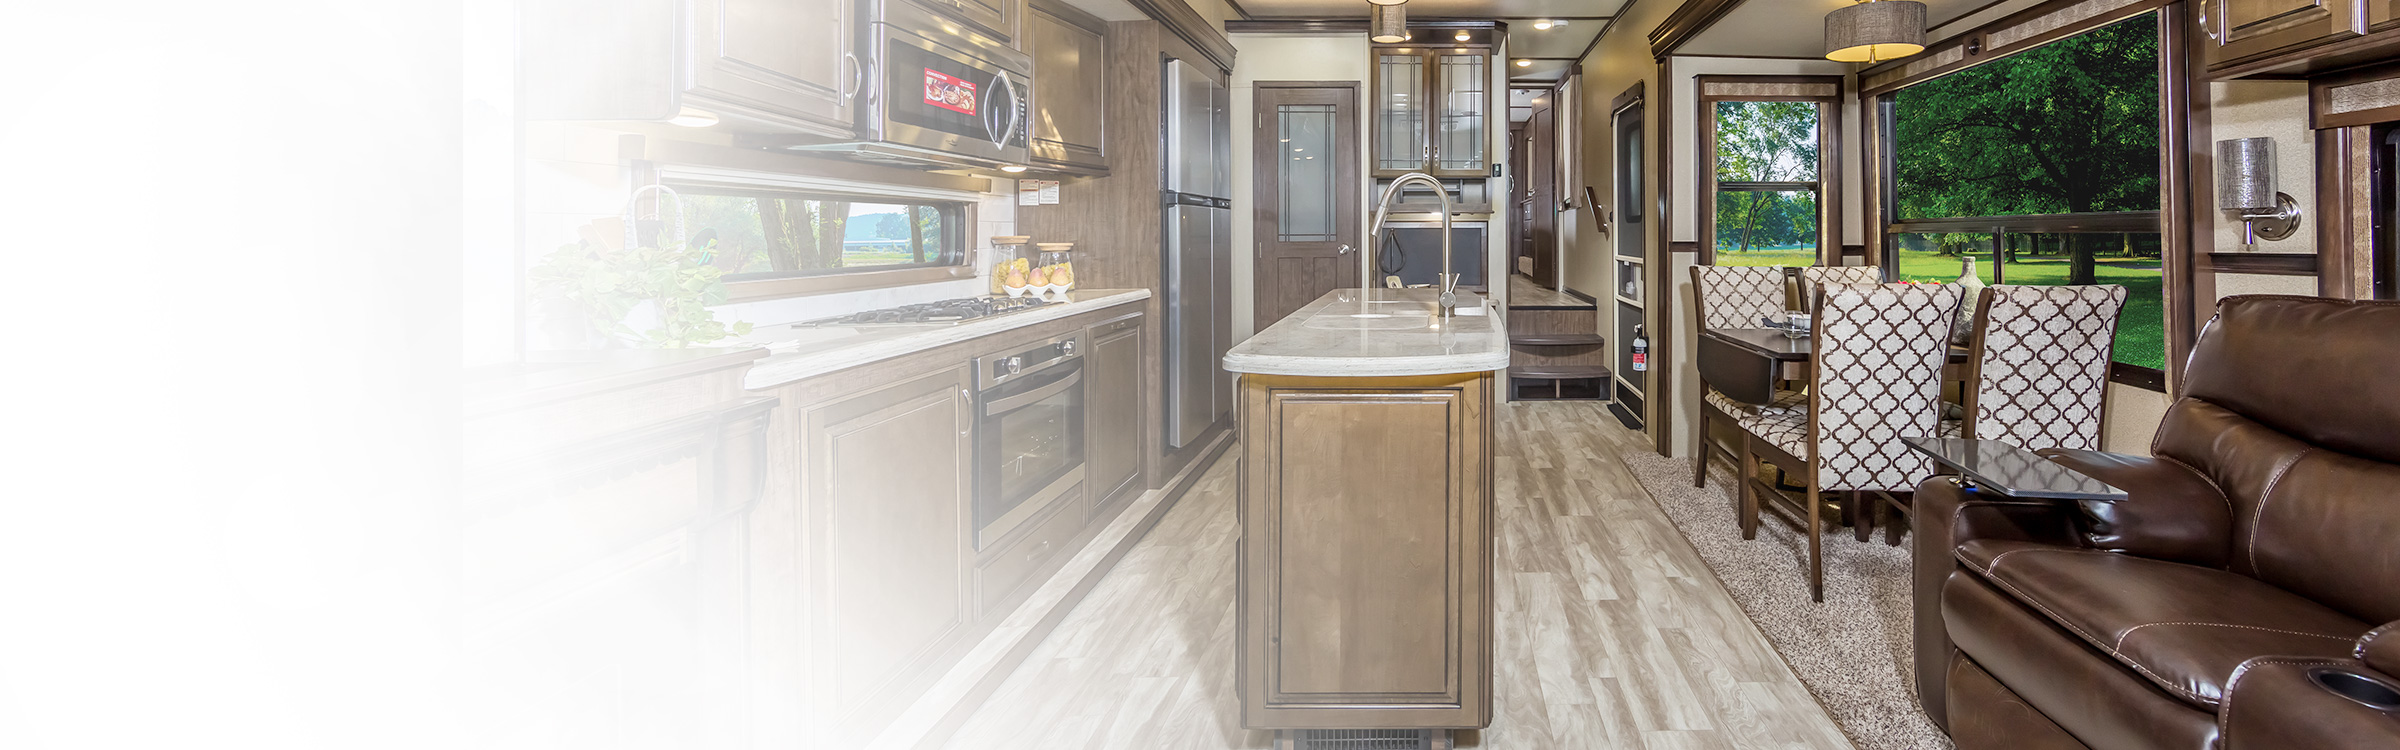 Grand design solitude problems - The Solitude Delivers Taller Ceilings Deeper Cabinets Larger Scenic Window Areas A Full 80 Inch Tall Slideout And A Body Width That Measures A Full